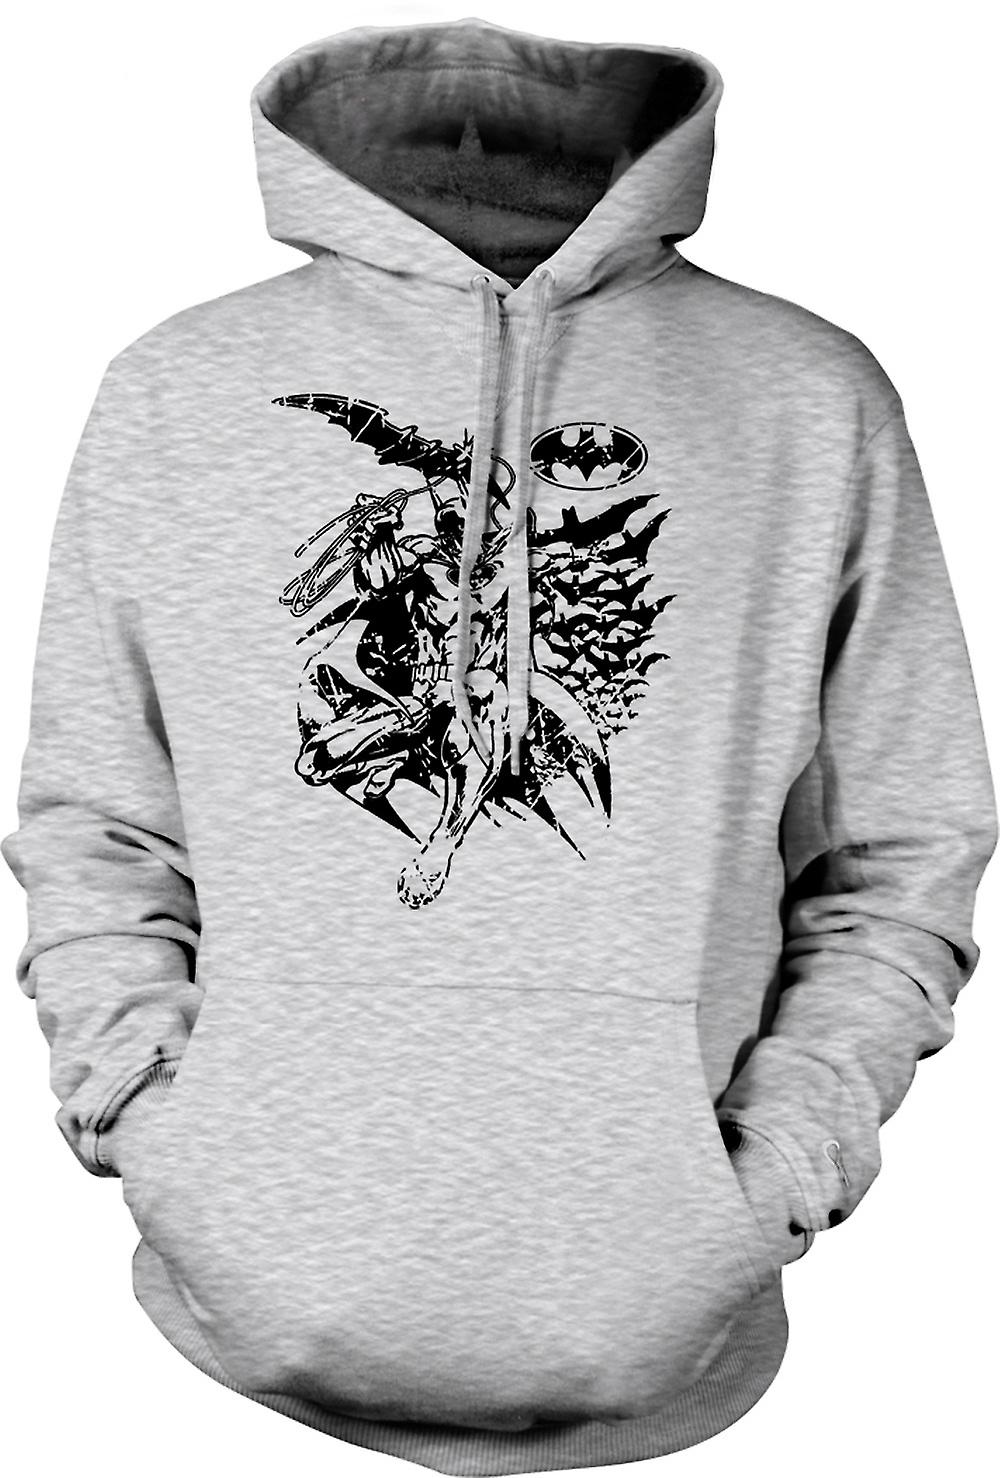 Mens Hoodie - Batman Bats Caped - Crusader - BW